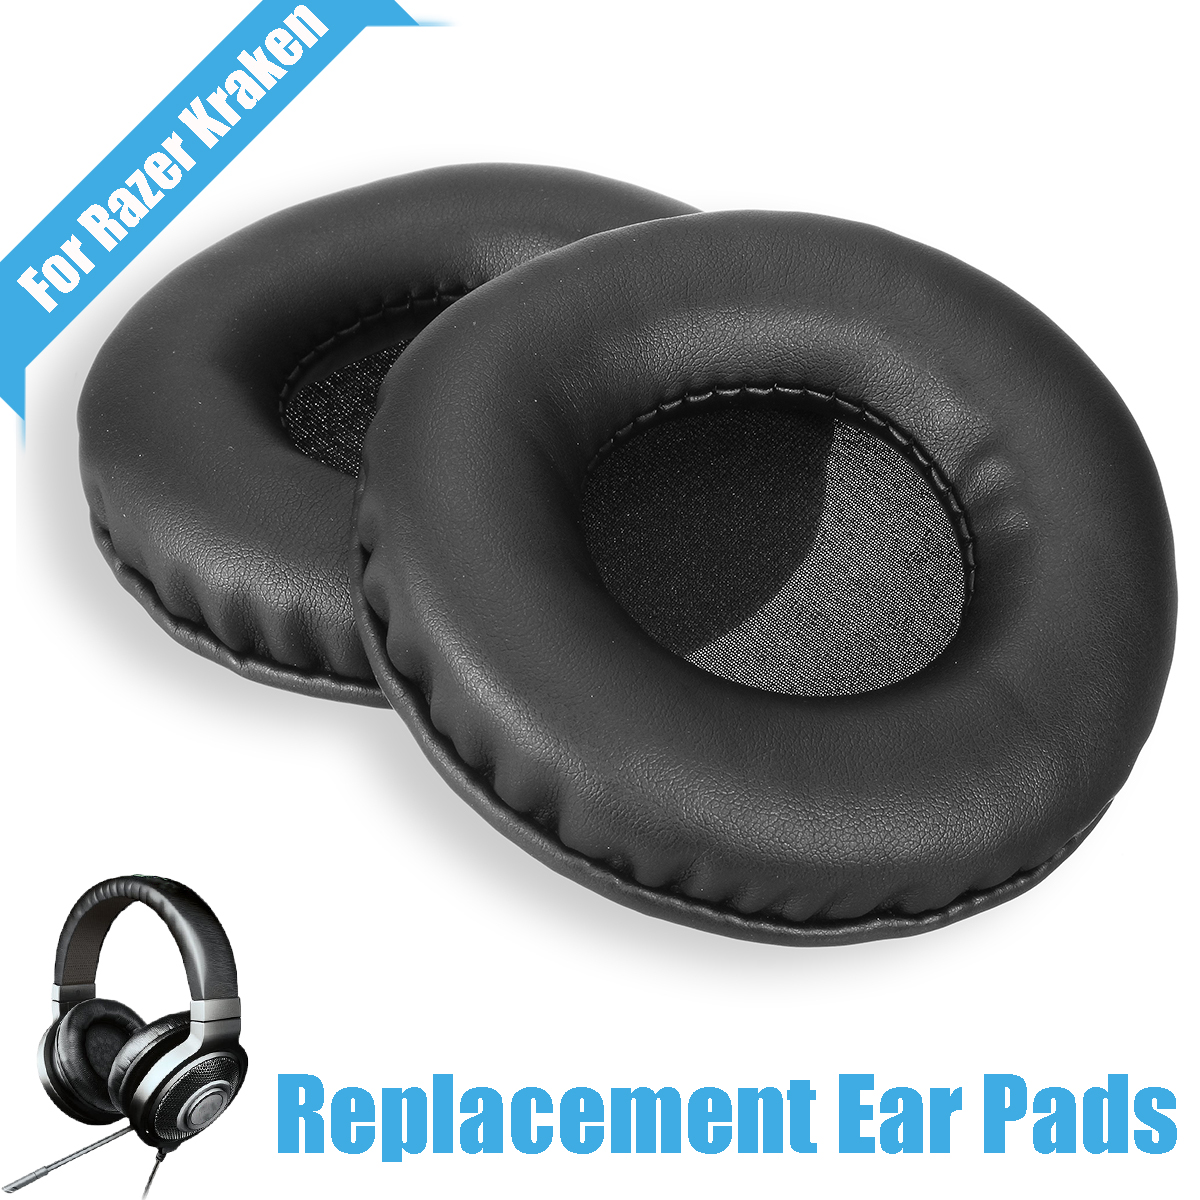 1Pair?Replacement Ear Pads for Razer?Kraken Headphones Protein Leather Soft Ear Cushions ...